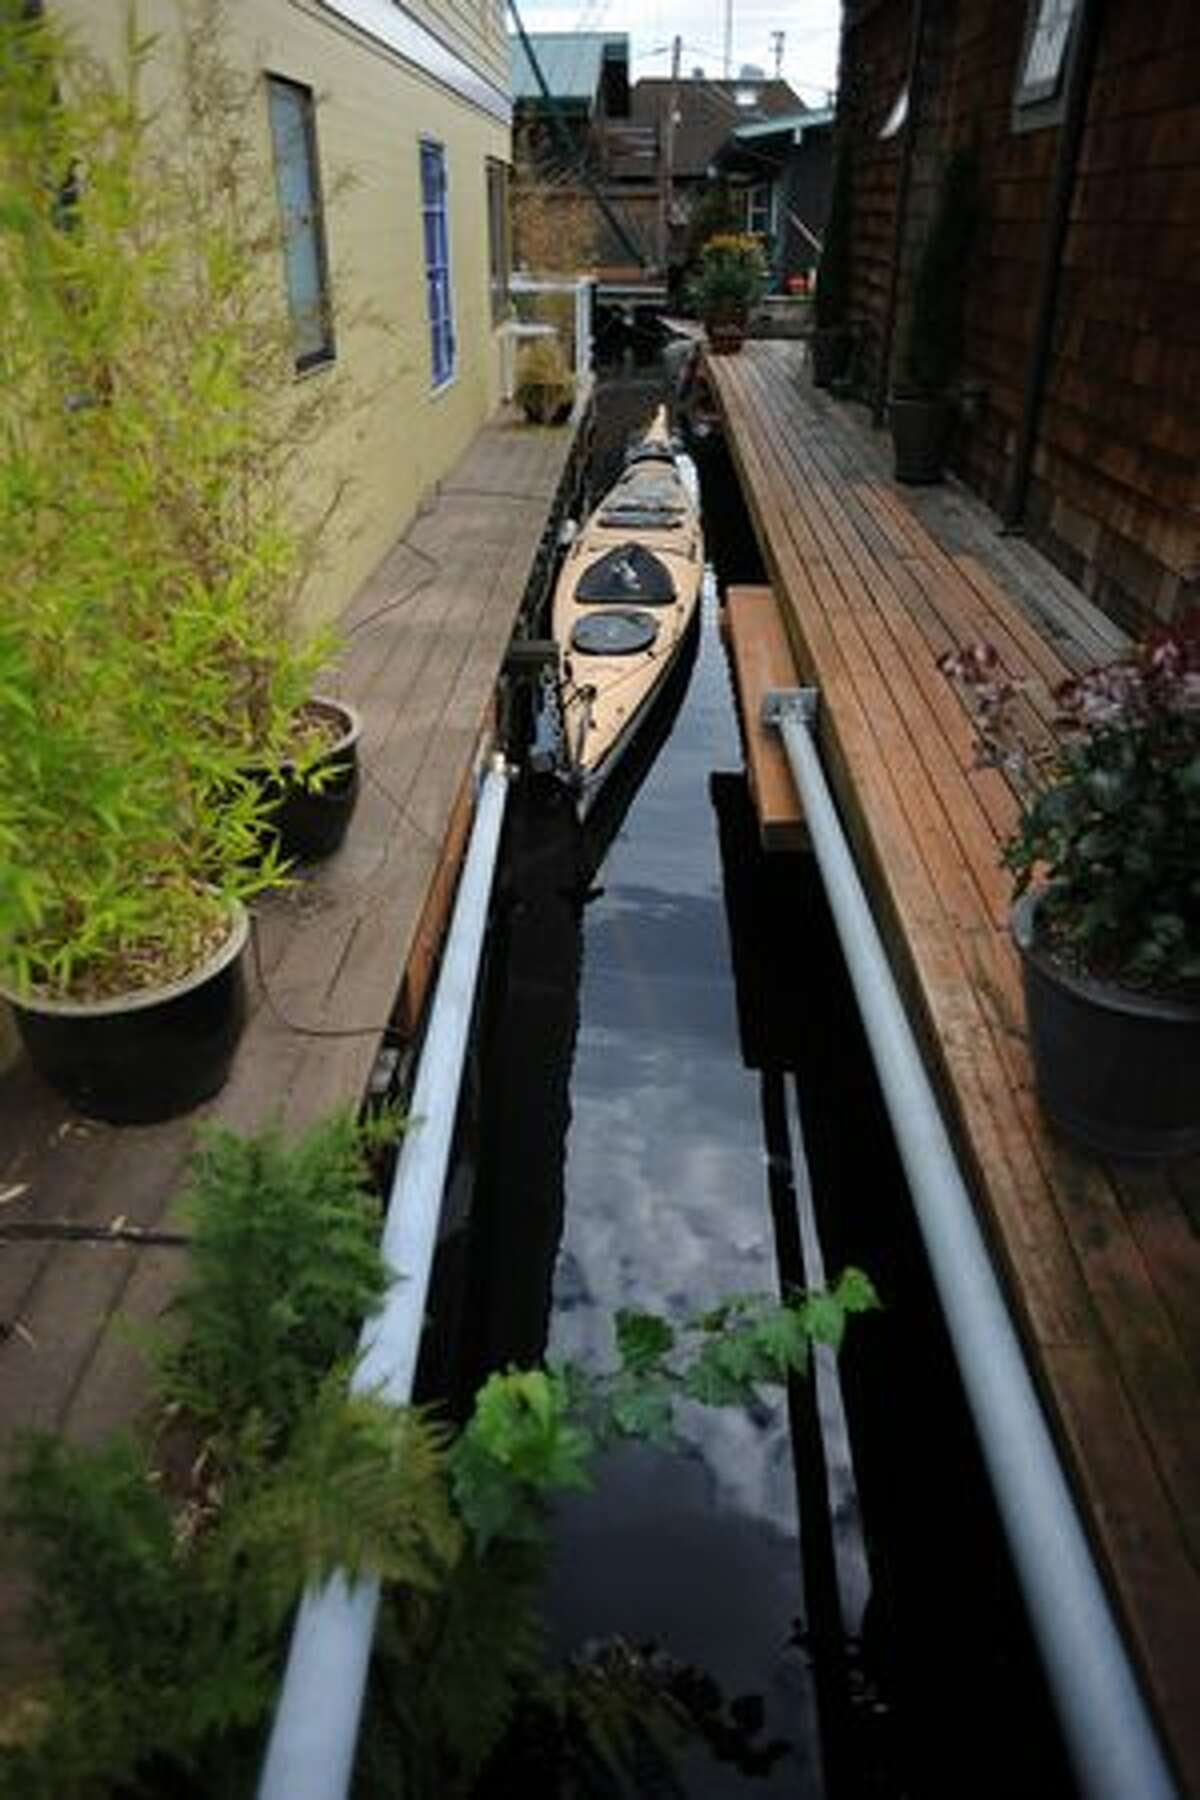 A kayak is tied down in the space between two houseboats at the 2010 Floating Homes Tour in Seattle.